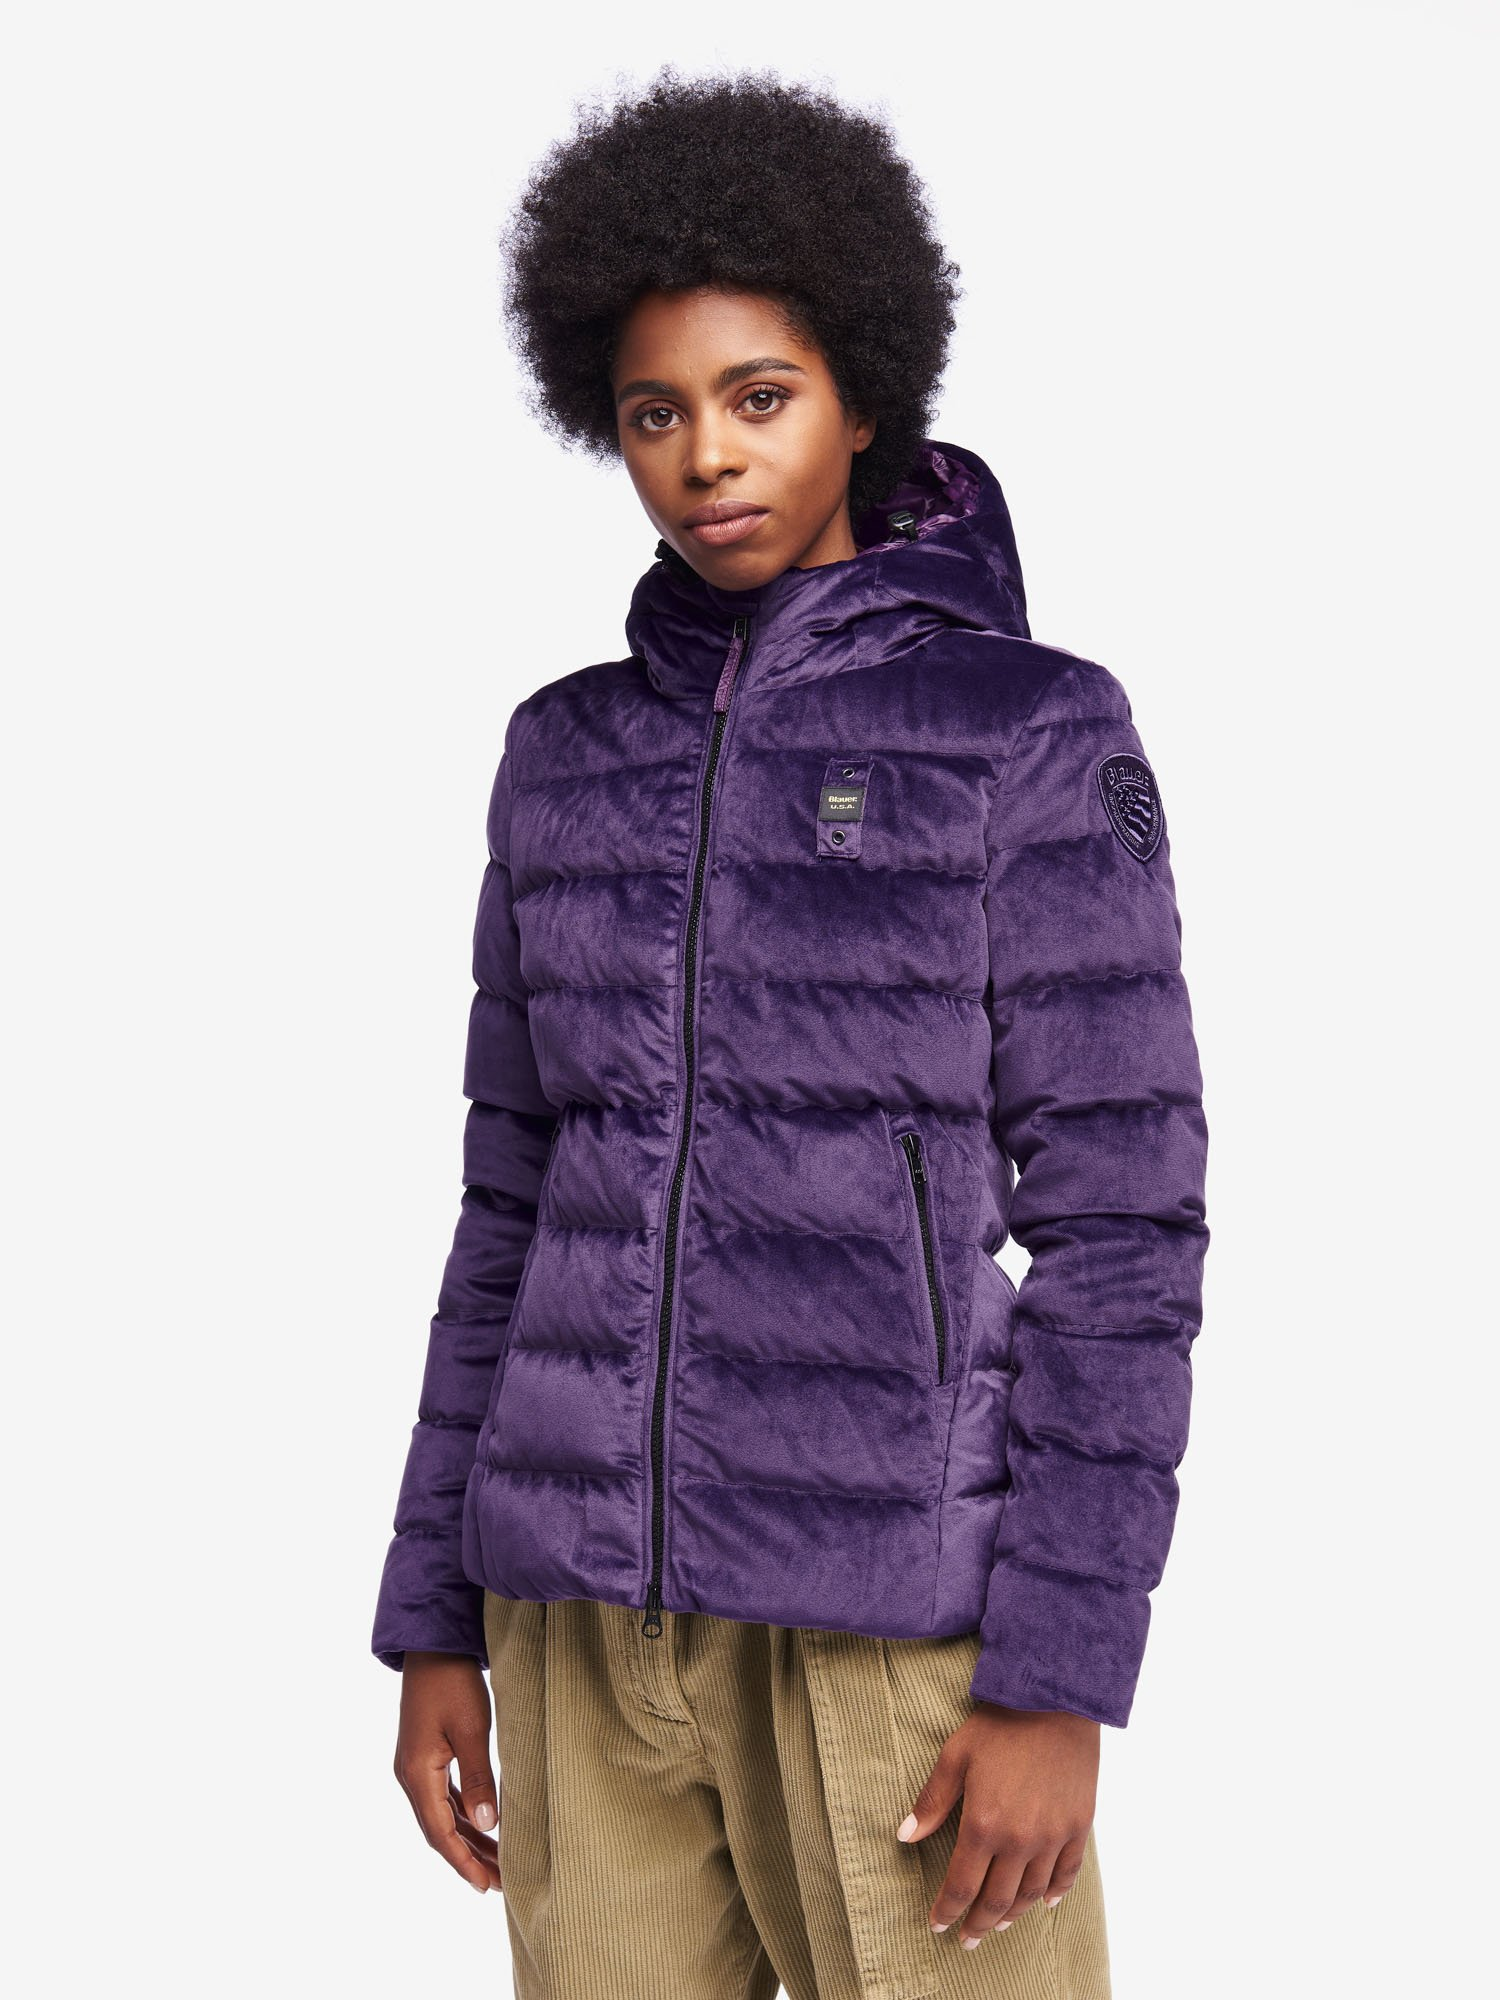 Blauer - PEARCE VELVETY DOWN JACKET - Purple Panse - Blauer